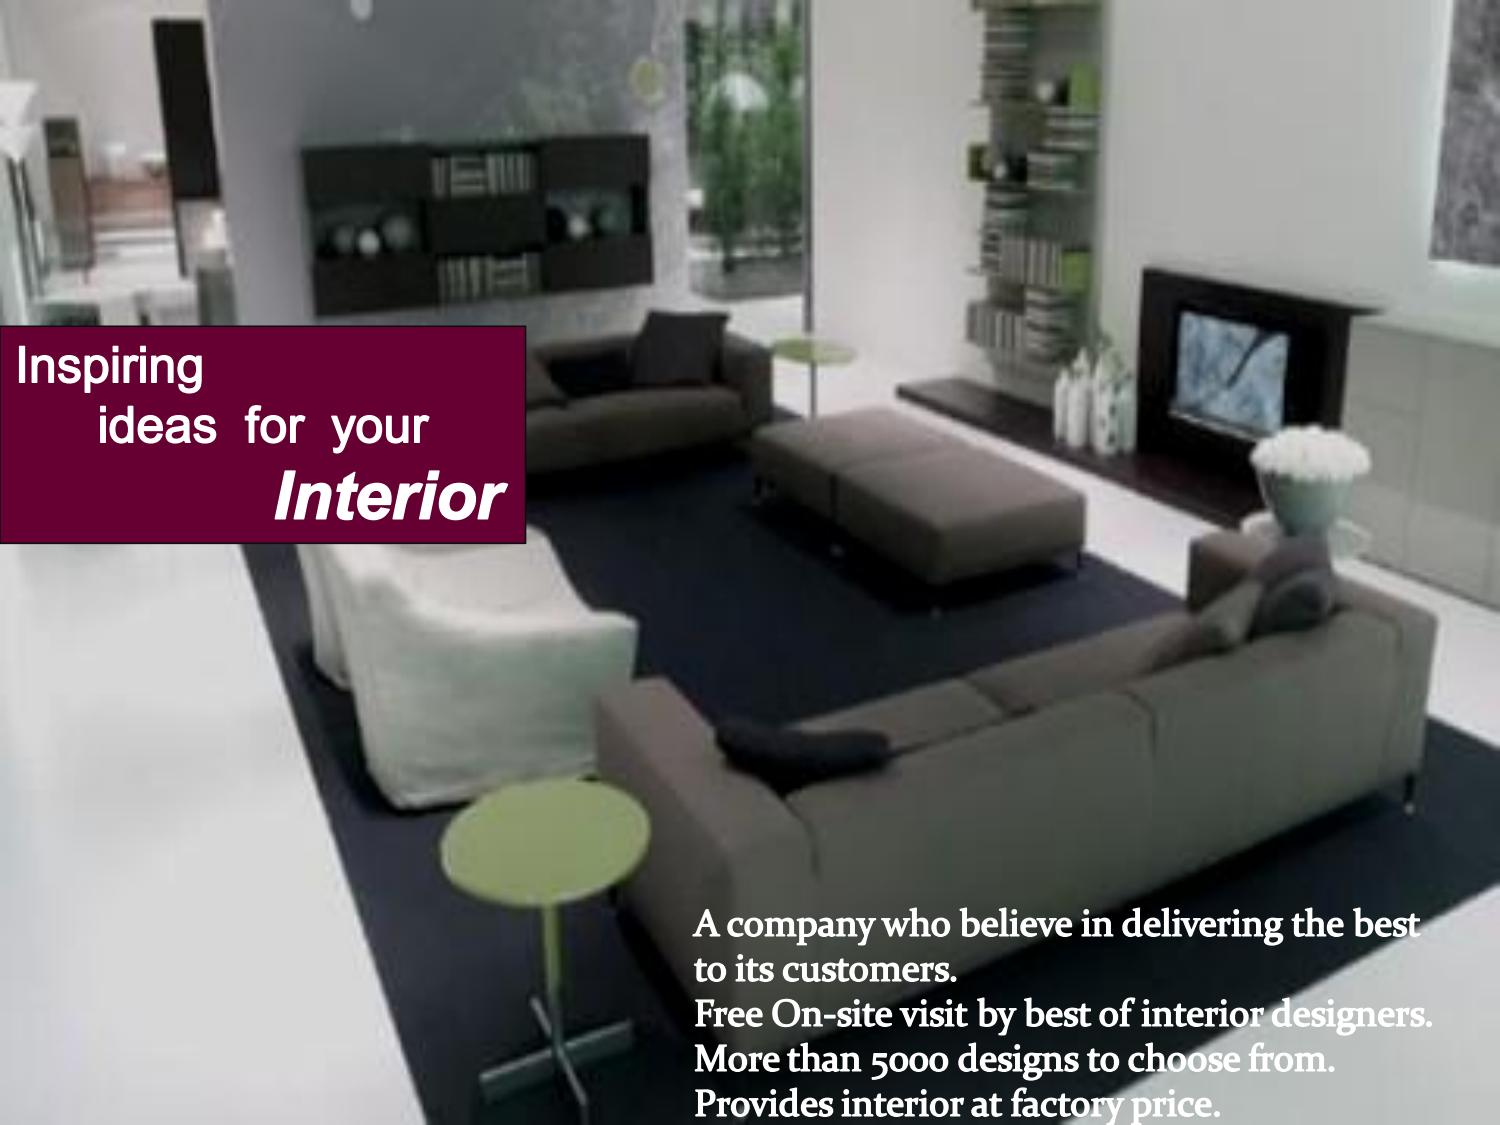 Interio Sofa Modular Fantasy De Interio By Fantasydeinterio Issuu